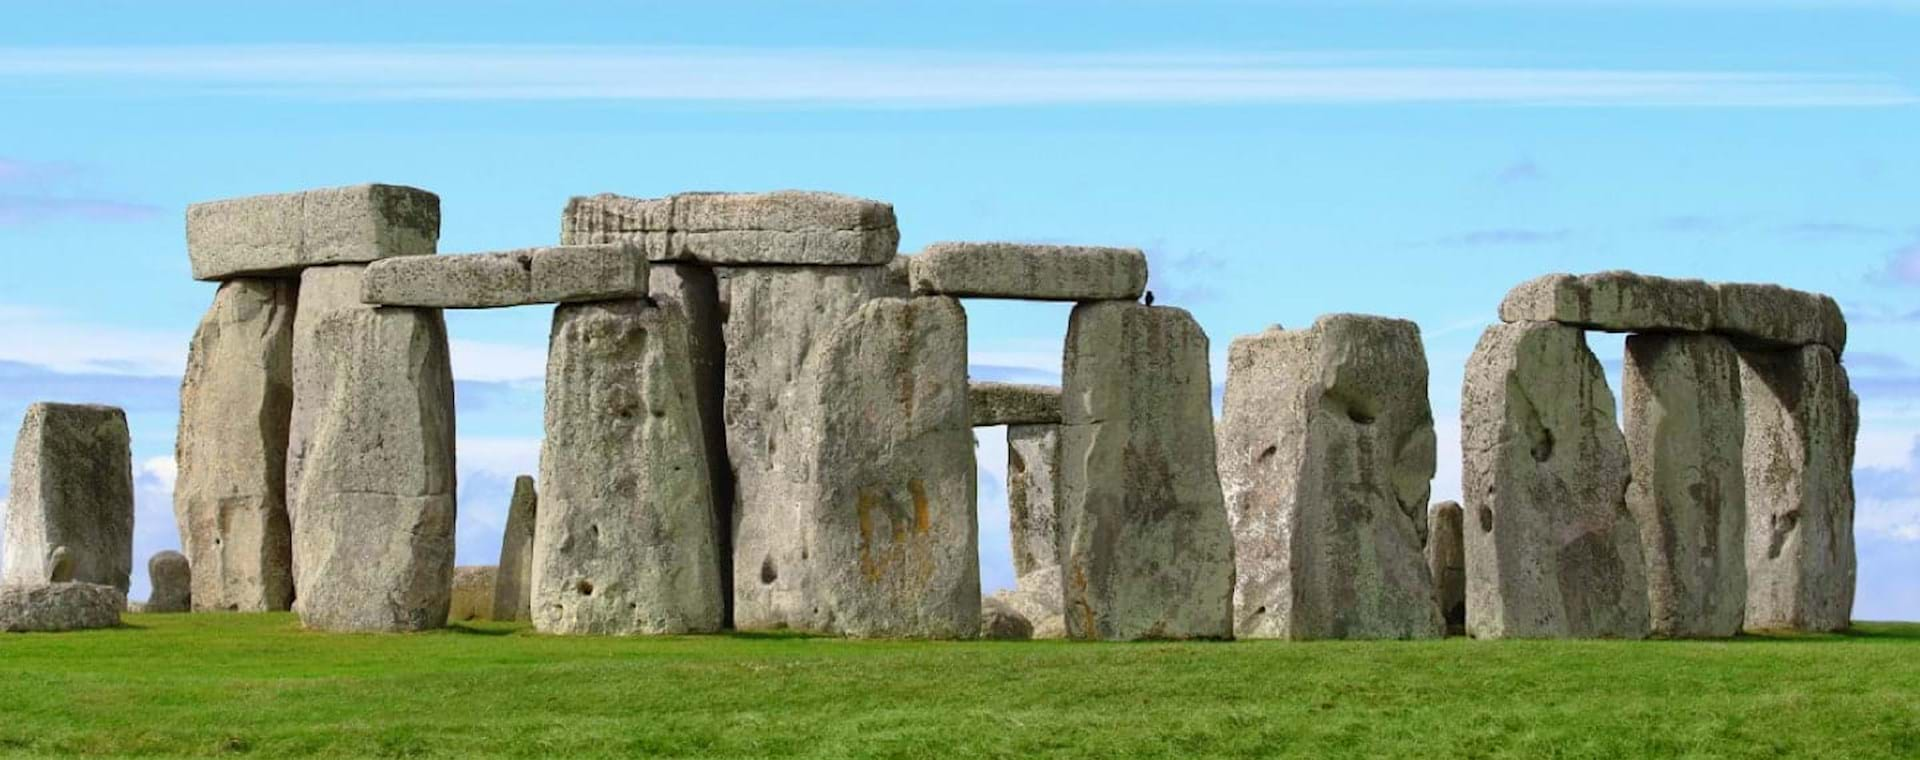 Guided Day Trip: Stonehenge, Bath, & Windsor Castle Tour from London